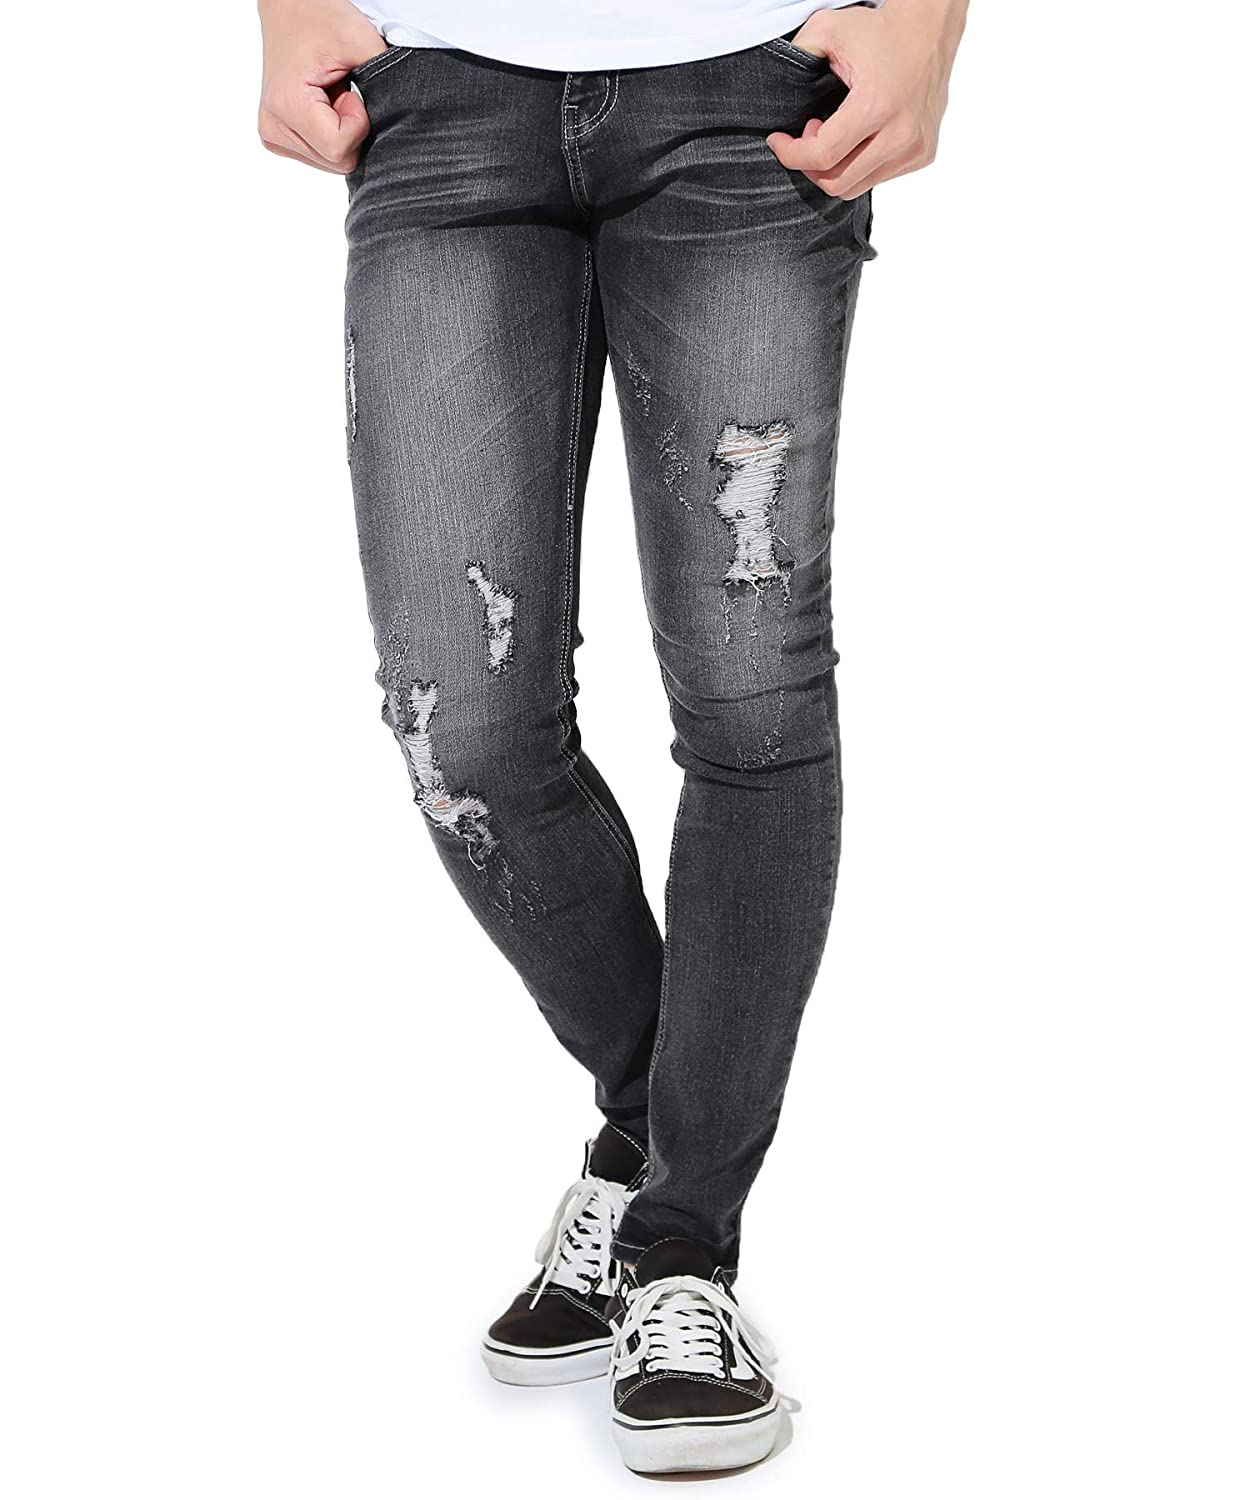 bf49f82573d JIGGYS SHOP Men's Non-Ripped and Ripped Jeans Denim Stretch and Ultra Slim  Fit Spandex Pants